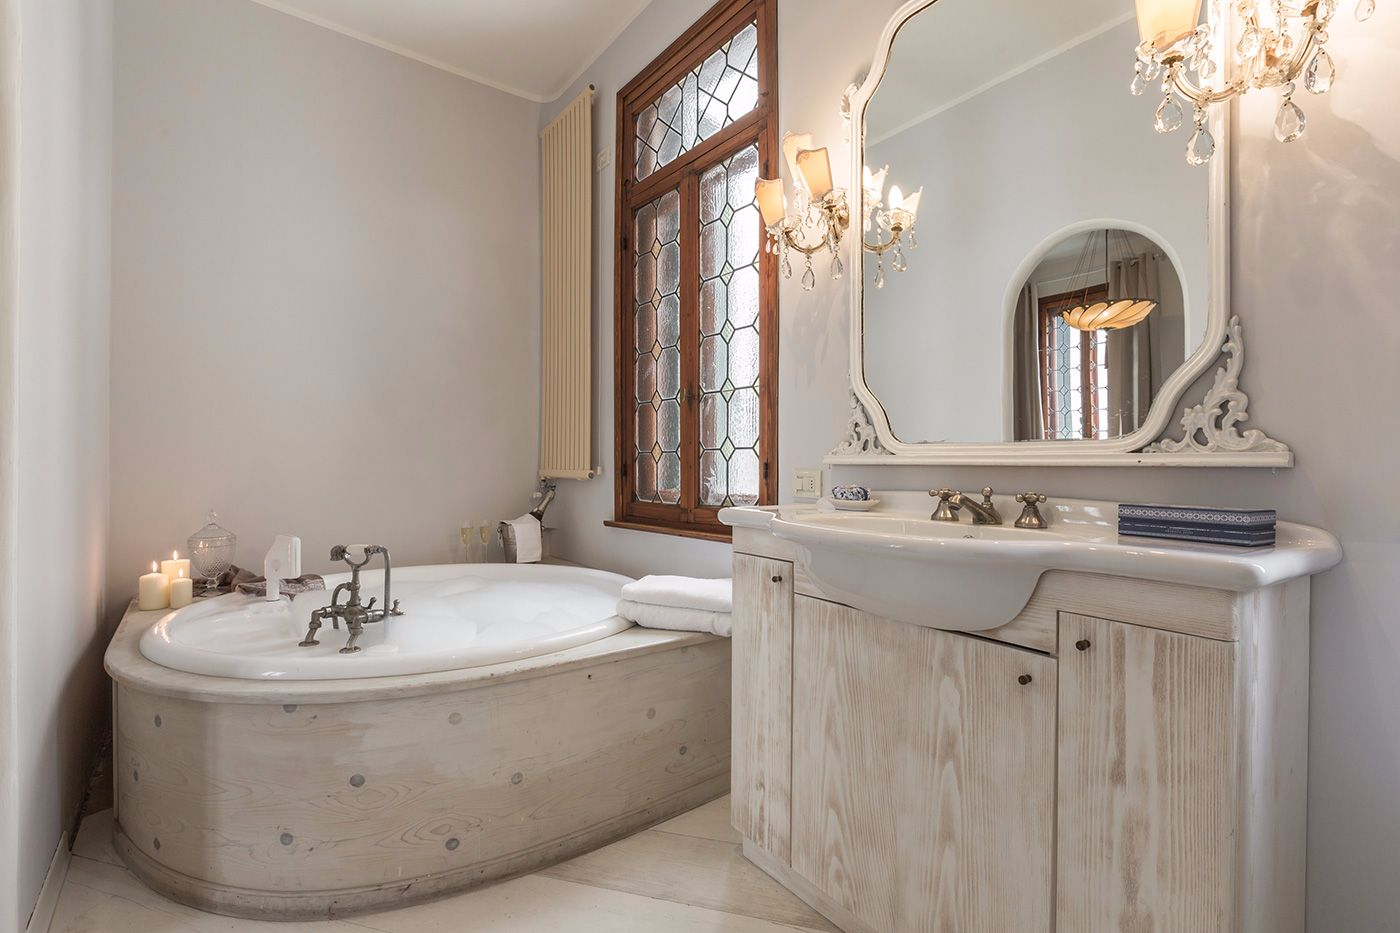 with round bathtub with whirlpool